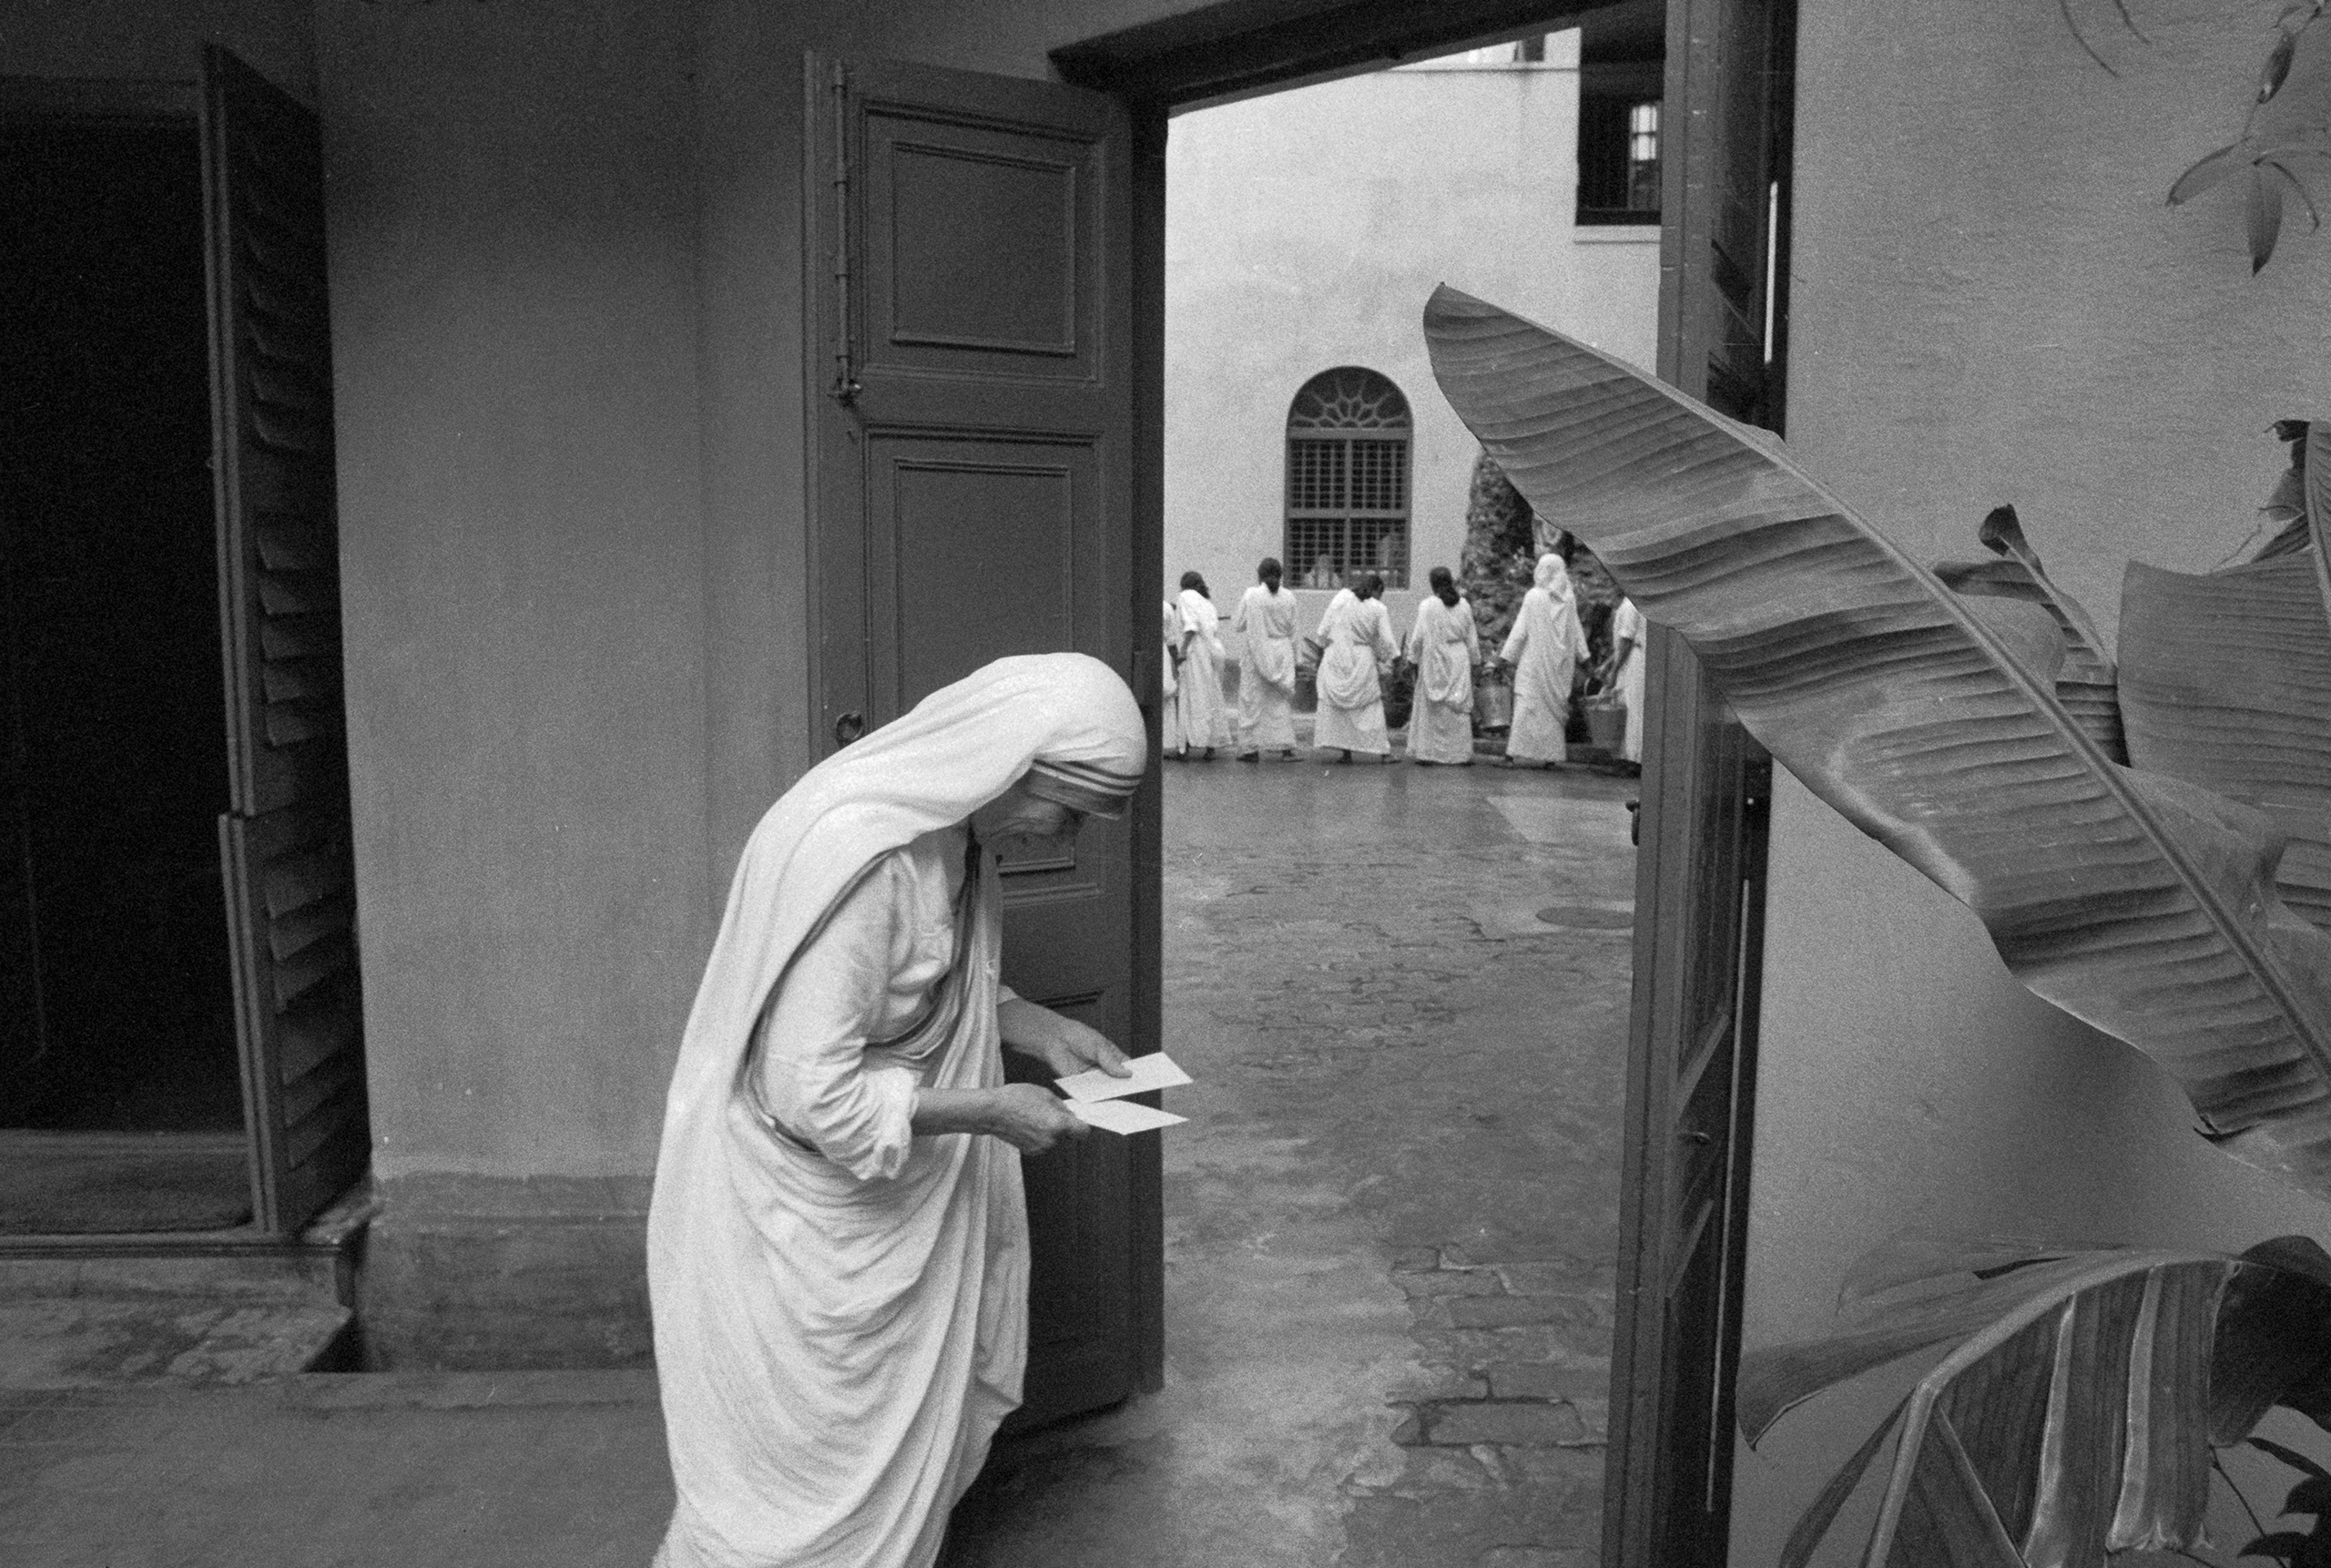 Mother Teresa takes a couple minutes to herself at a prayer hall before going about her daily rounds.